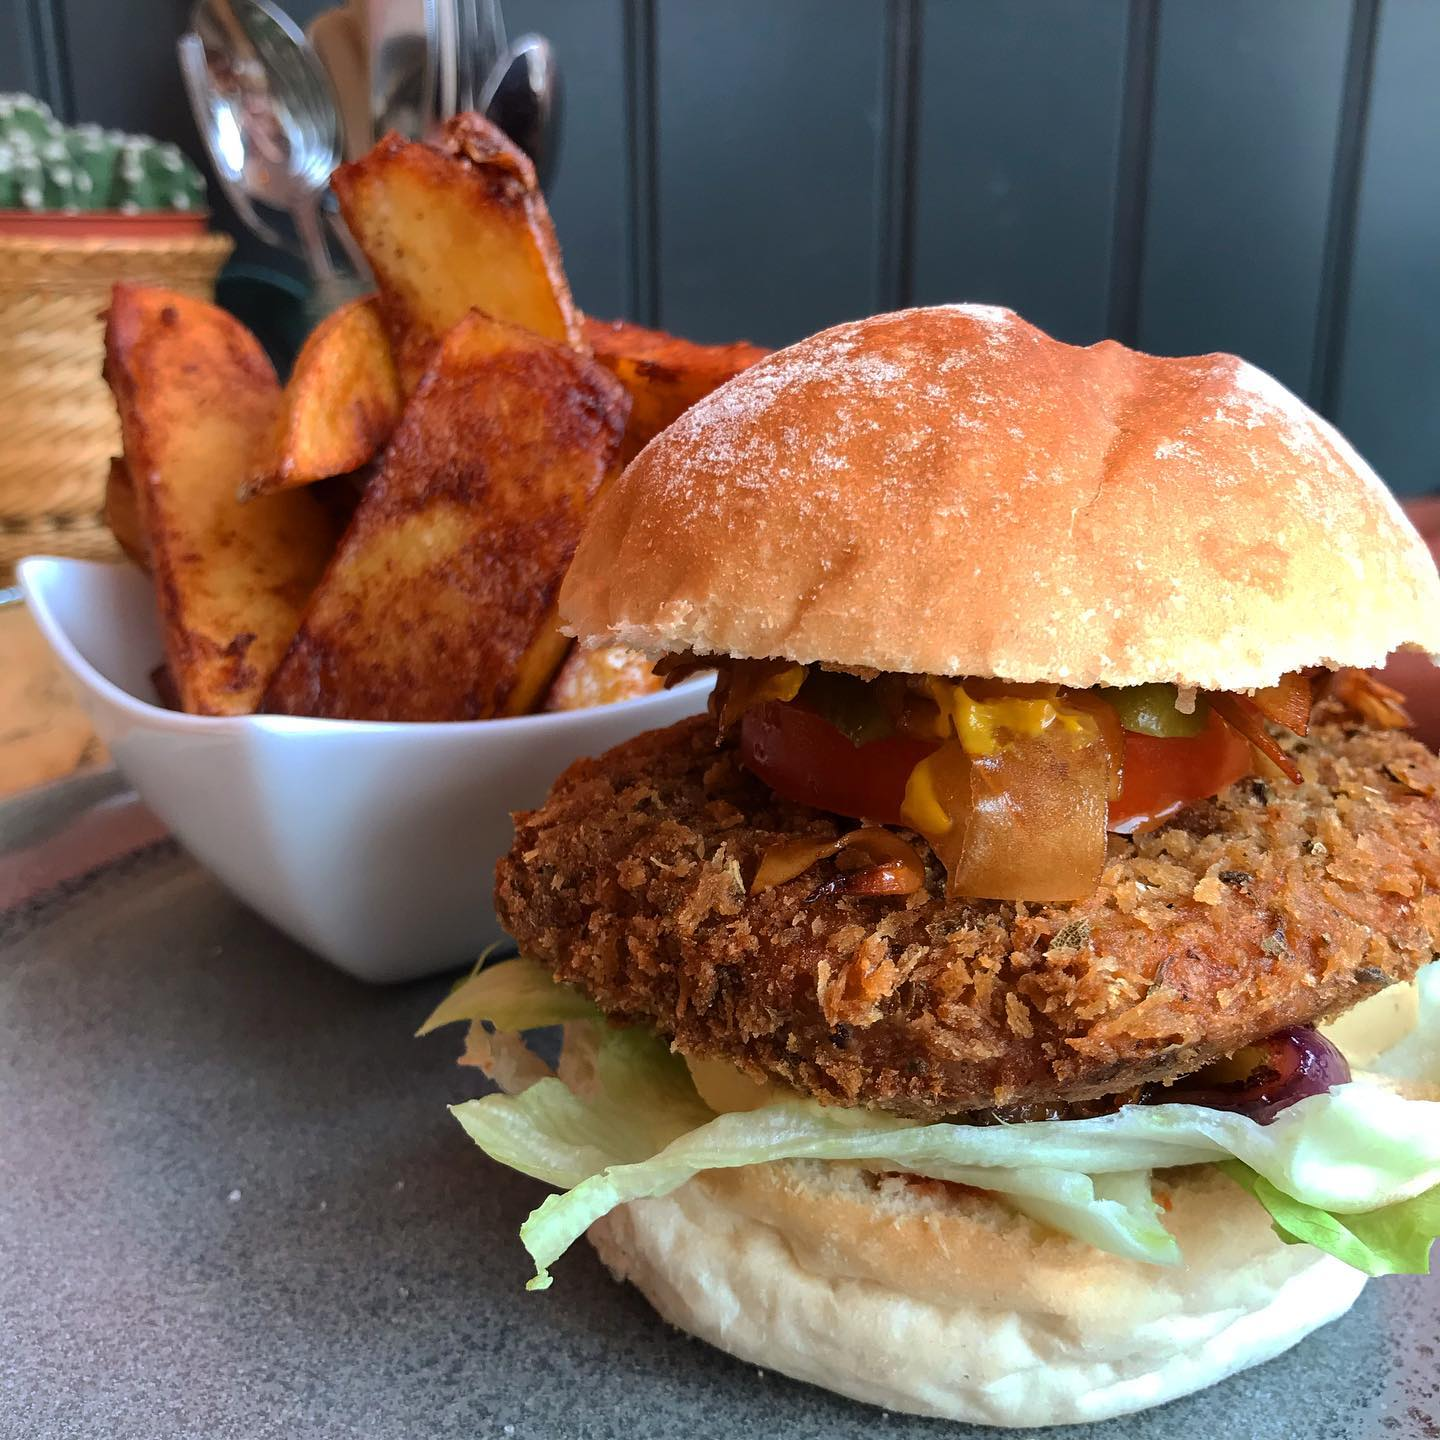 Vegan burger in a bun and bowl of chips from Peach, Isle of Wight